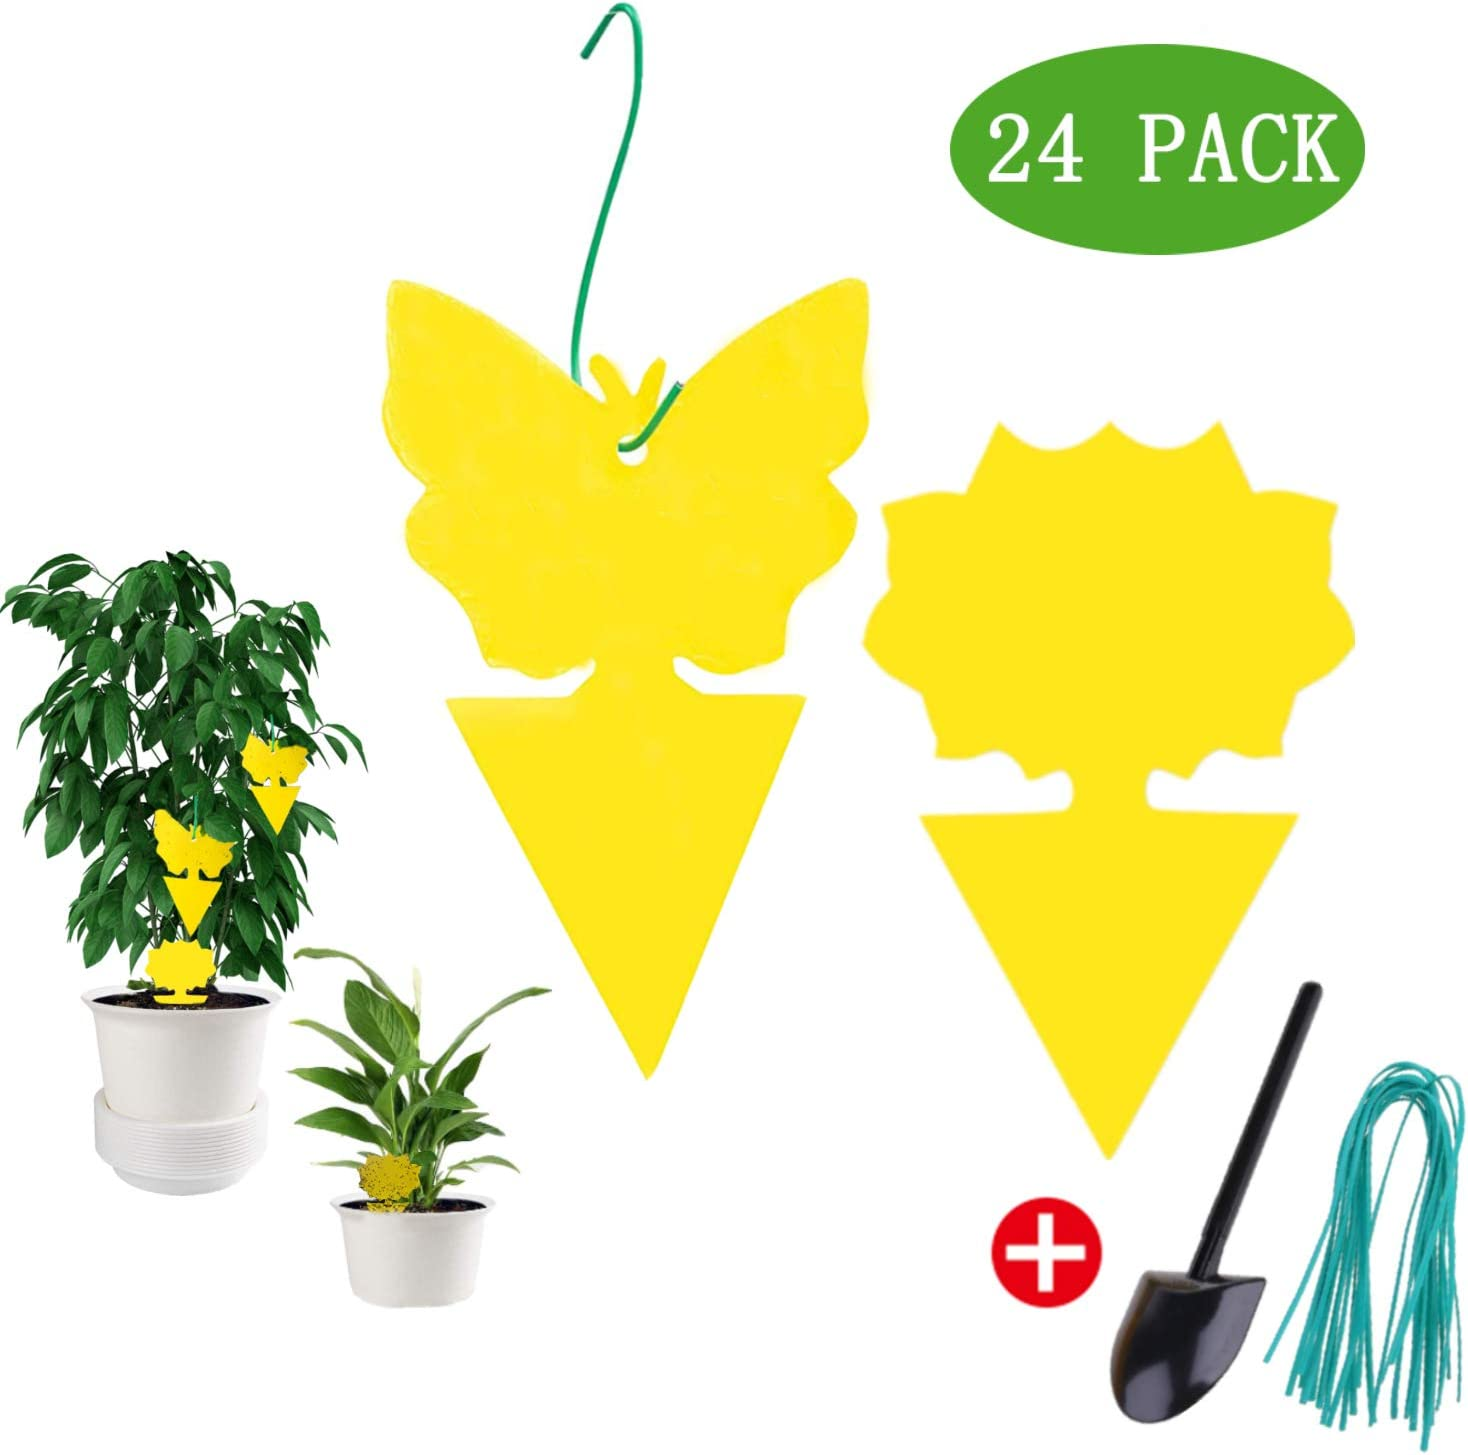 VIVIK Dual-Sided Yellow Sticky Traps,Fruit Fly Trap for Indoor/Outdoor Use(24 Pack),Gnat Trap Indoor,Waterproof,Fungus Gnat Killer for Indoor Plants,Non-Toxic and Odorless